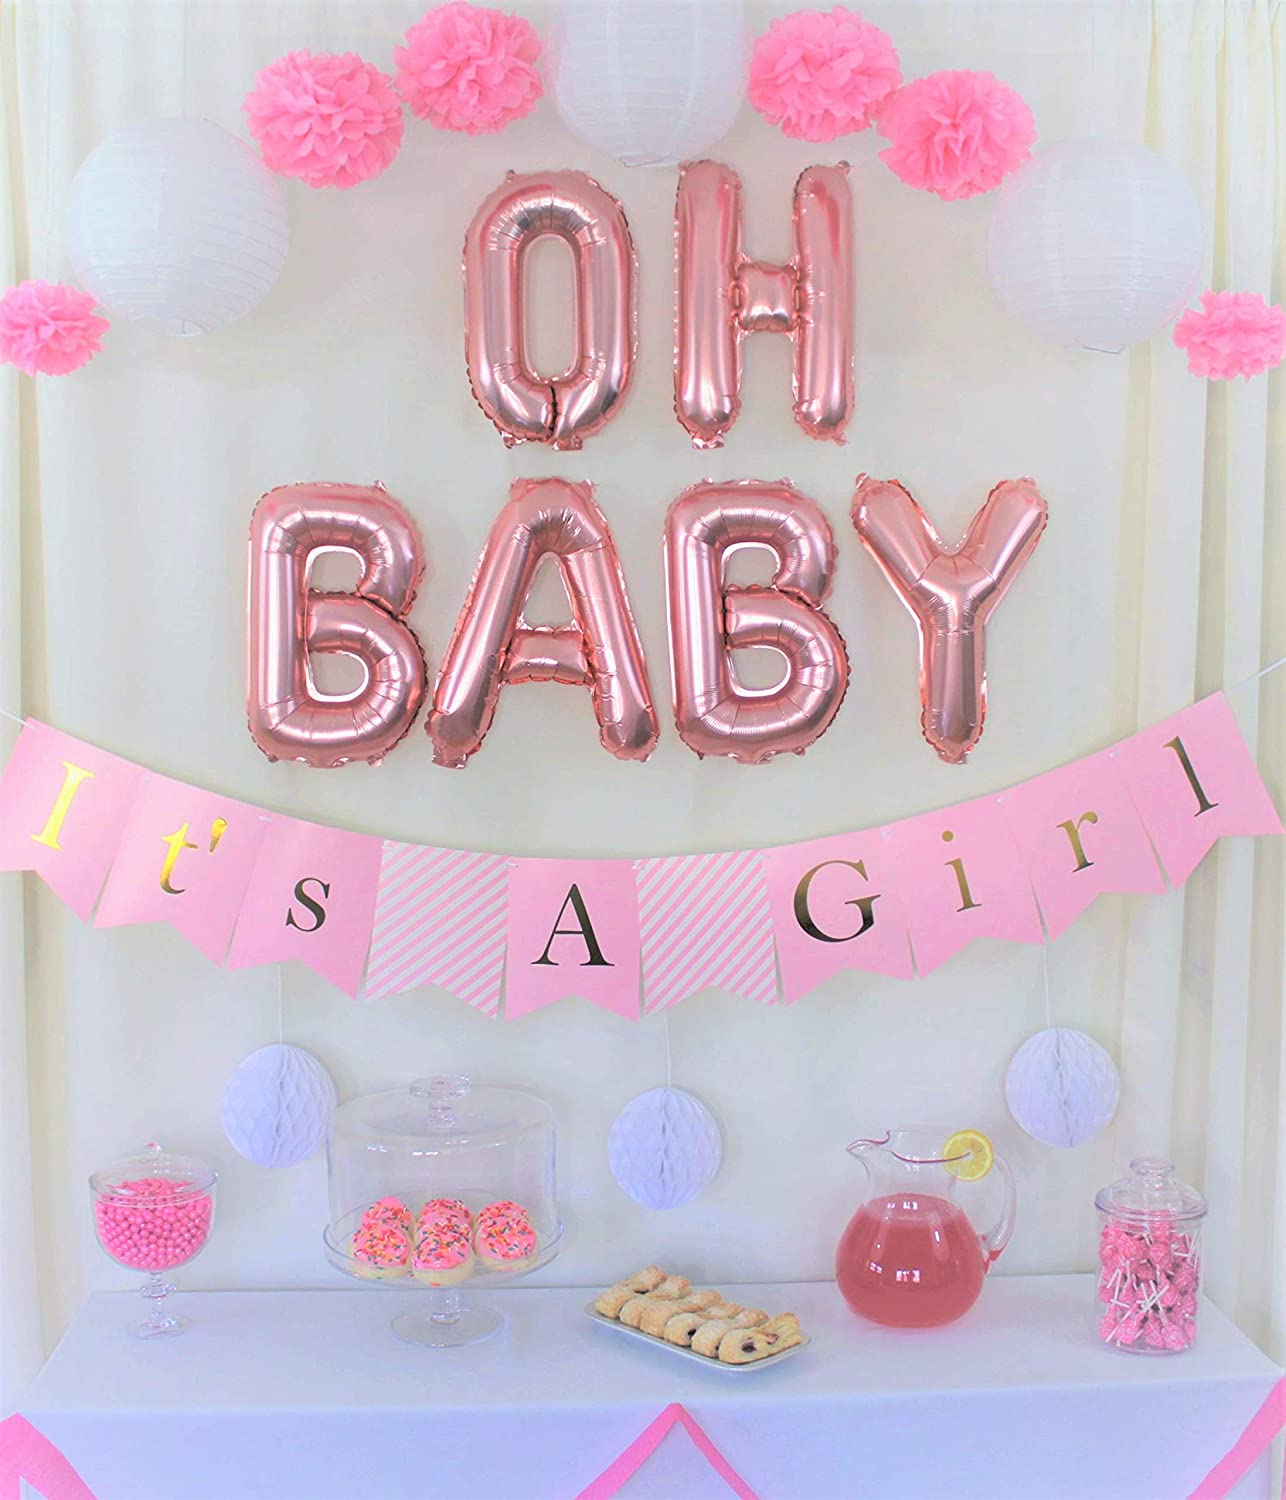 Sweet Baby Girl Party Banner,Baby Shower Decorations for Girl,Baby Party Suppliesr Gifts with Pink Shower Banner